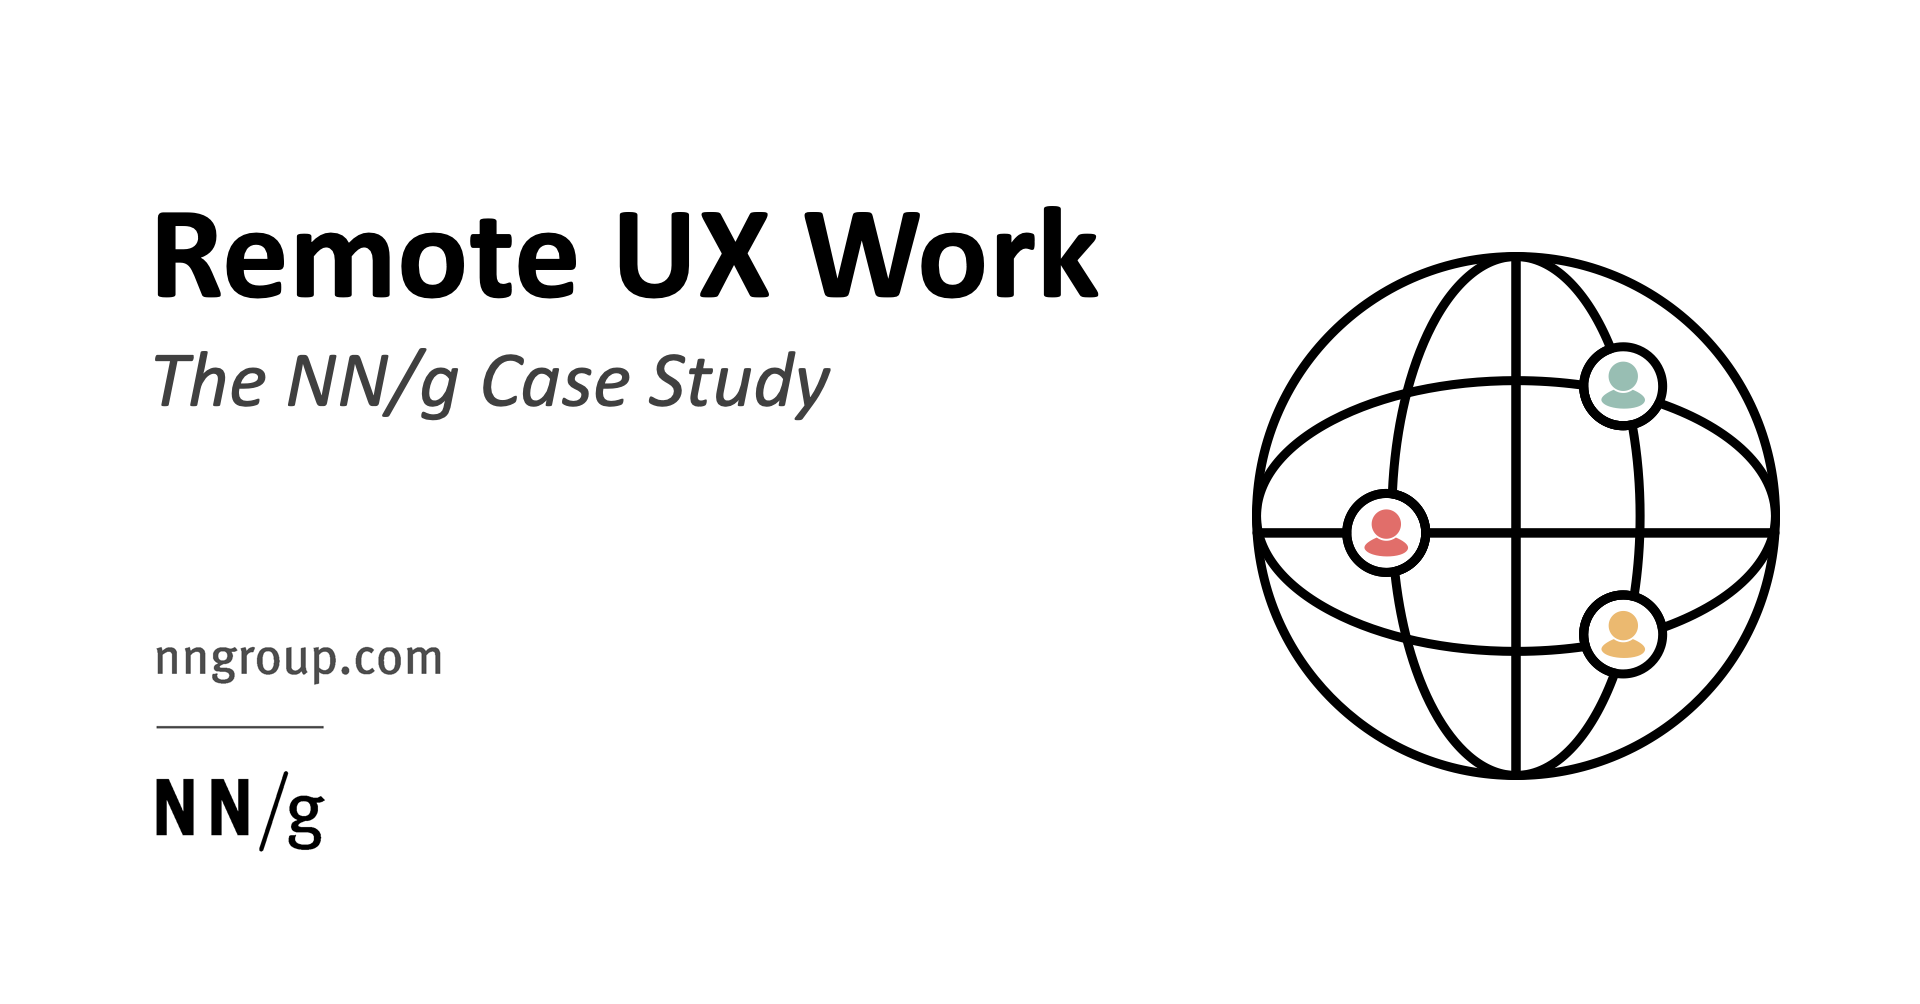 Remote UX Work: The NN/g Case Study